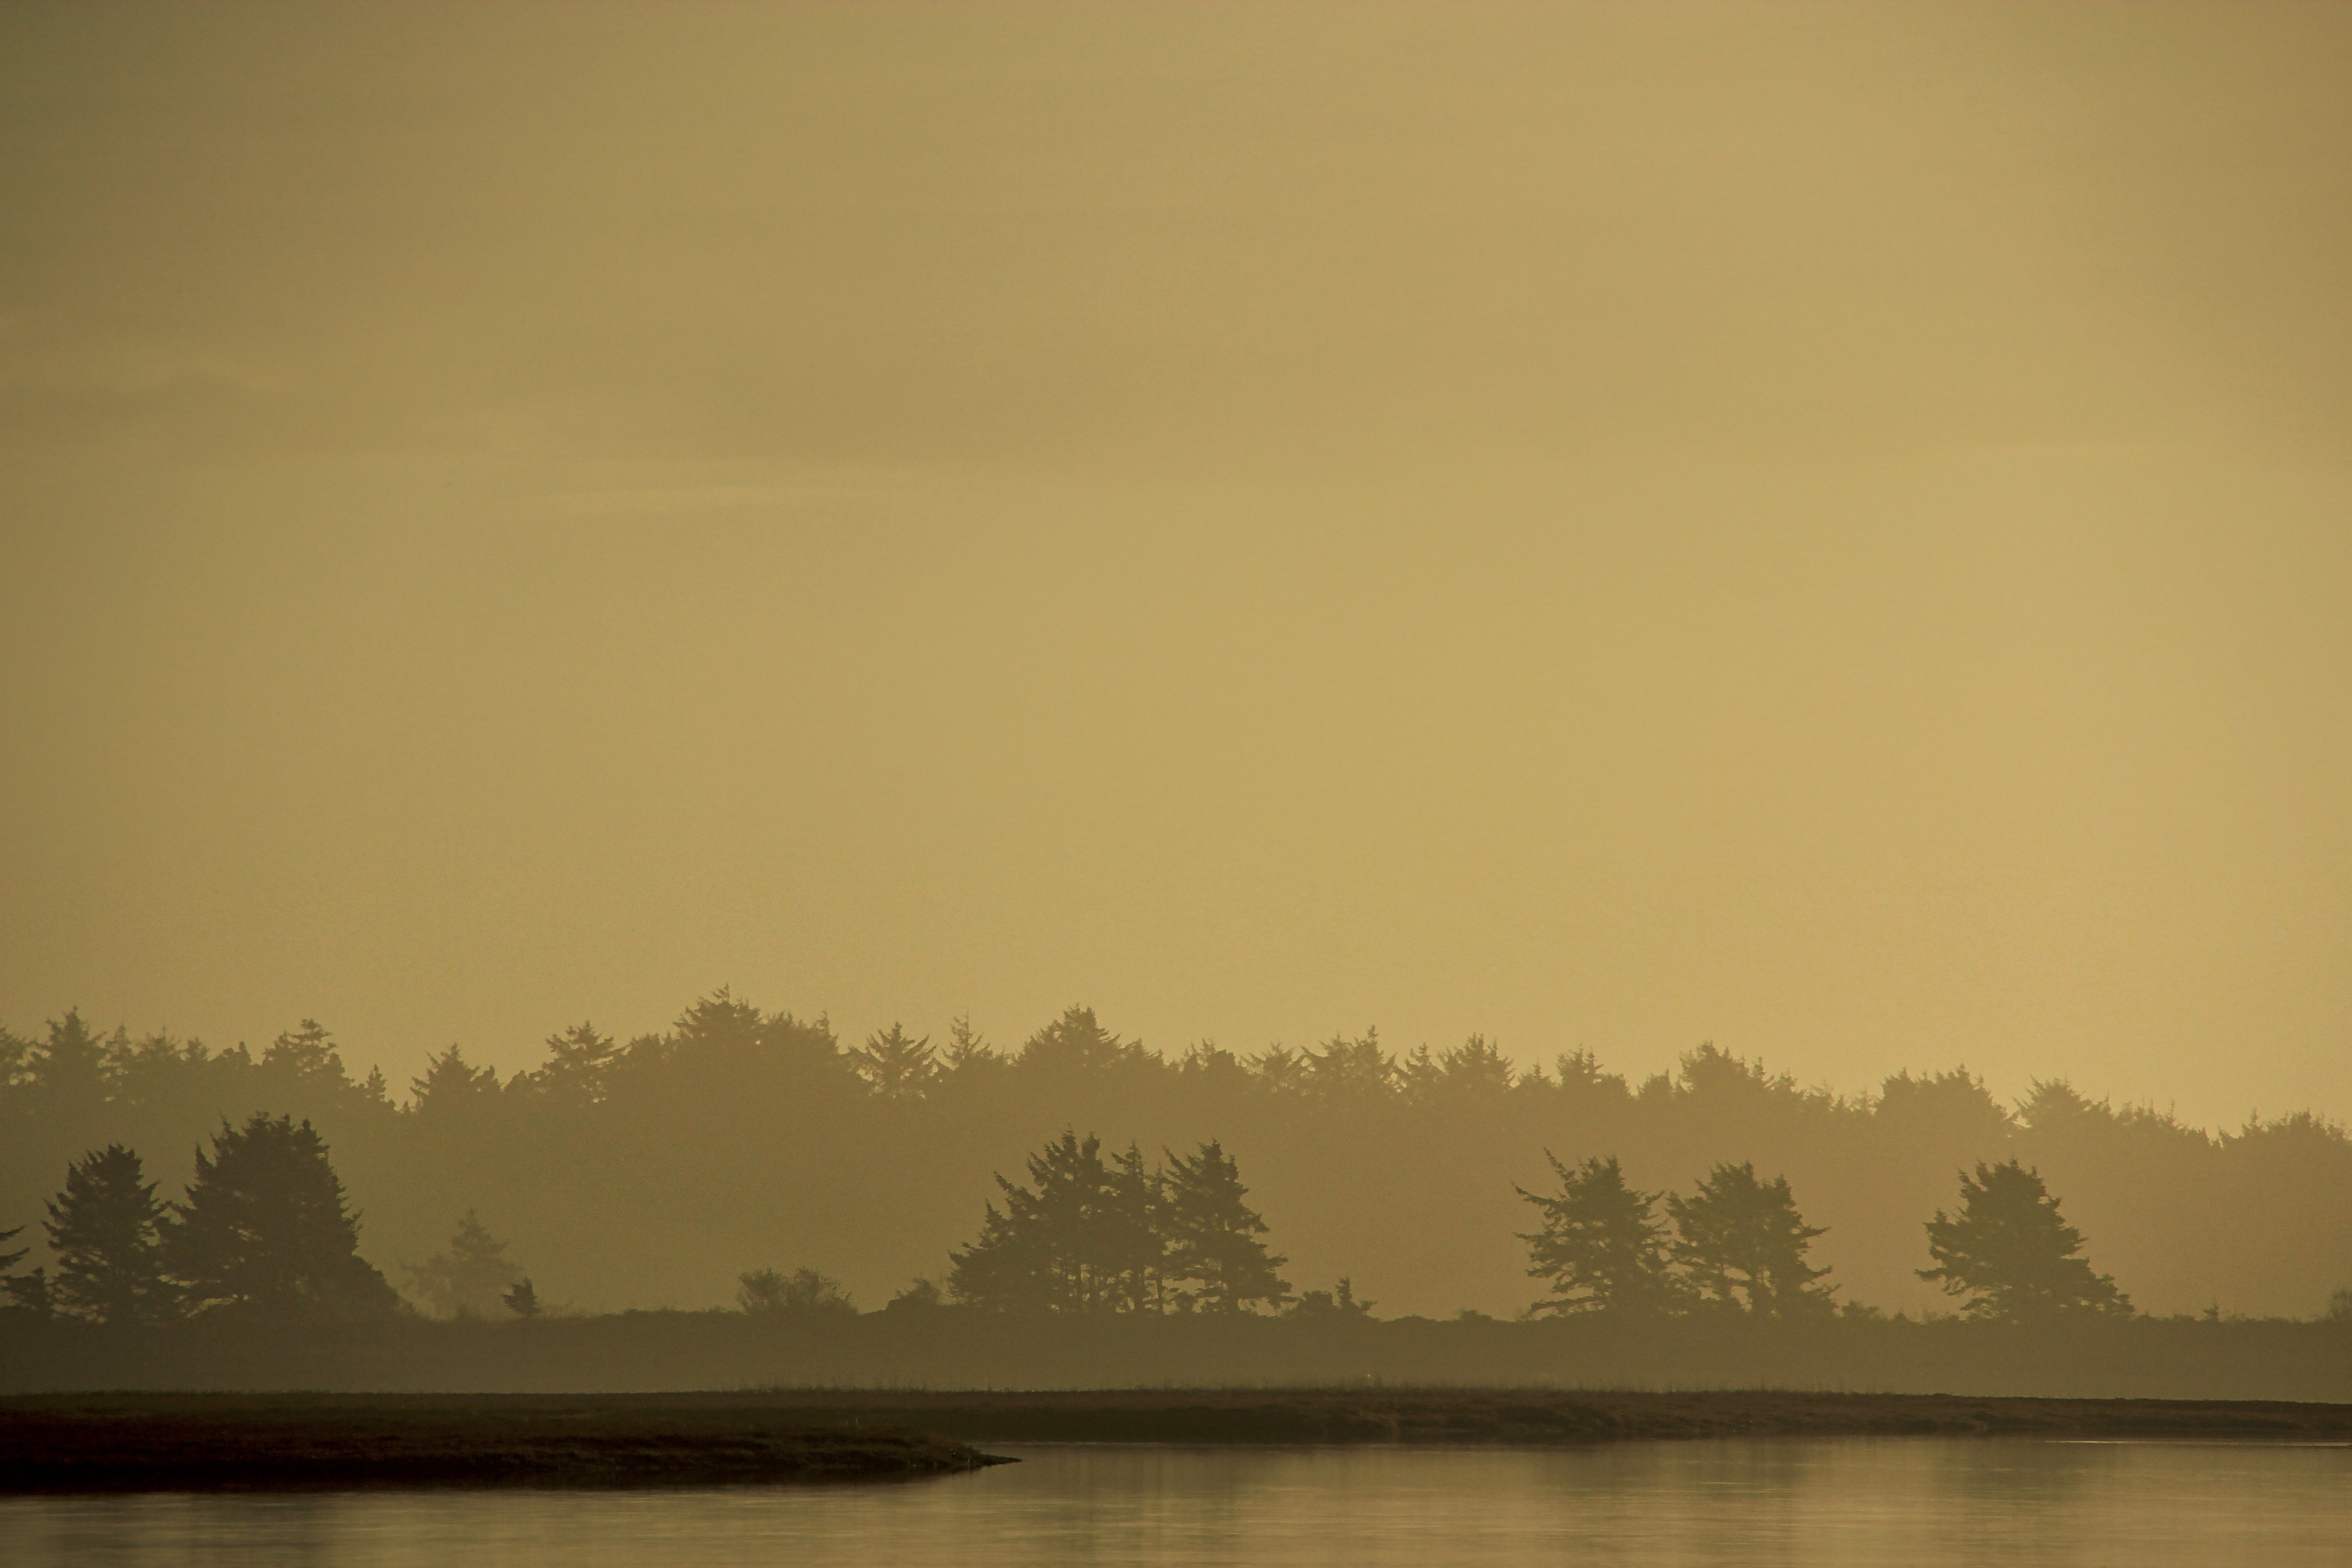 silhouette photography of trees near the body of water